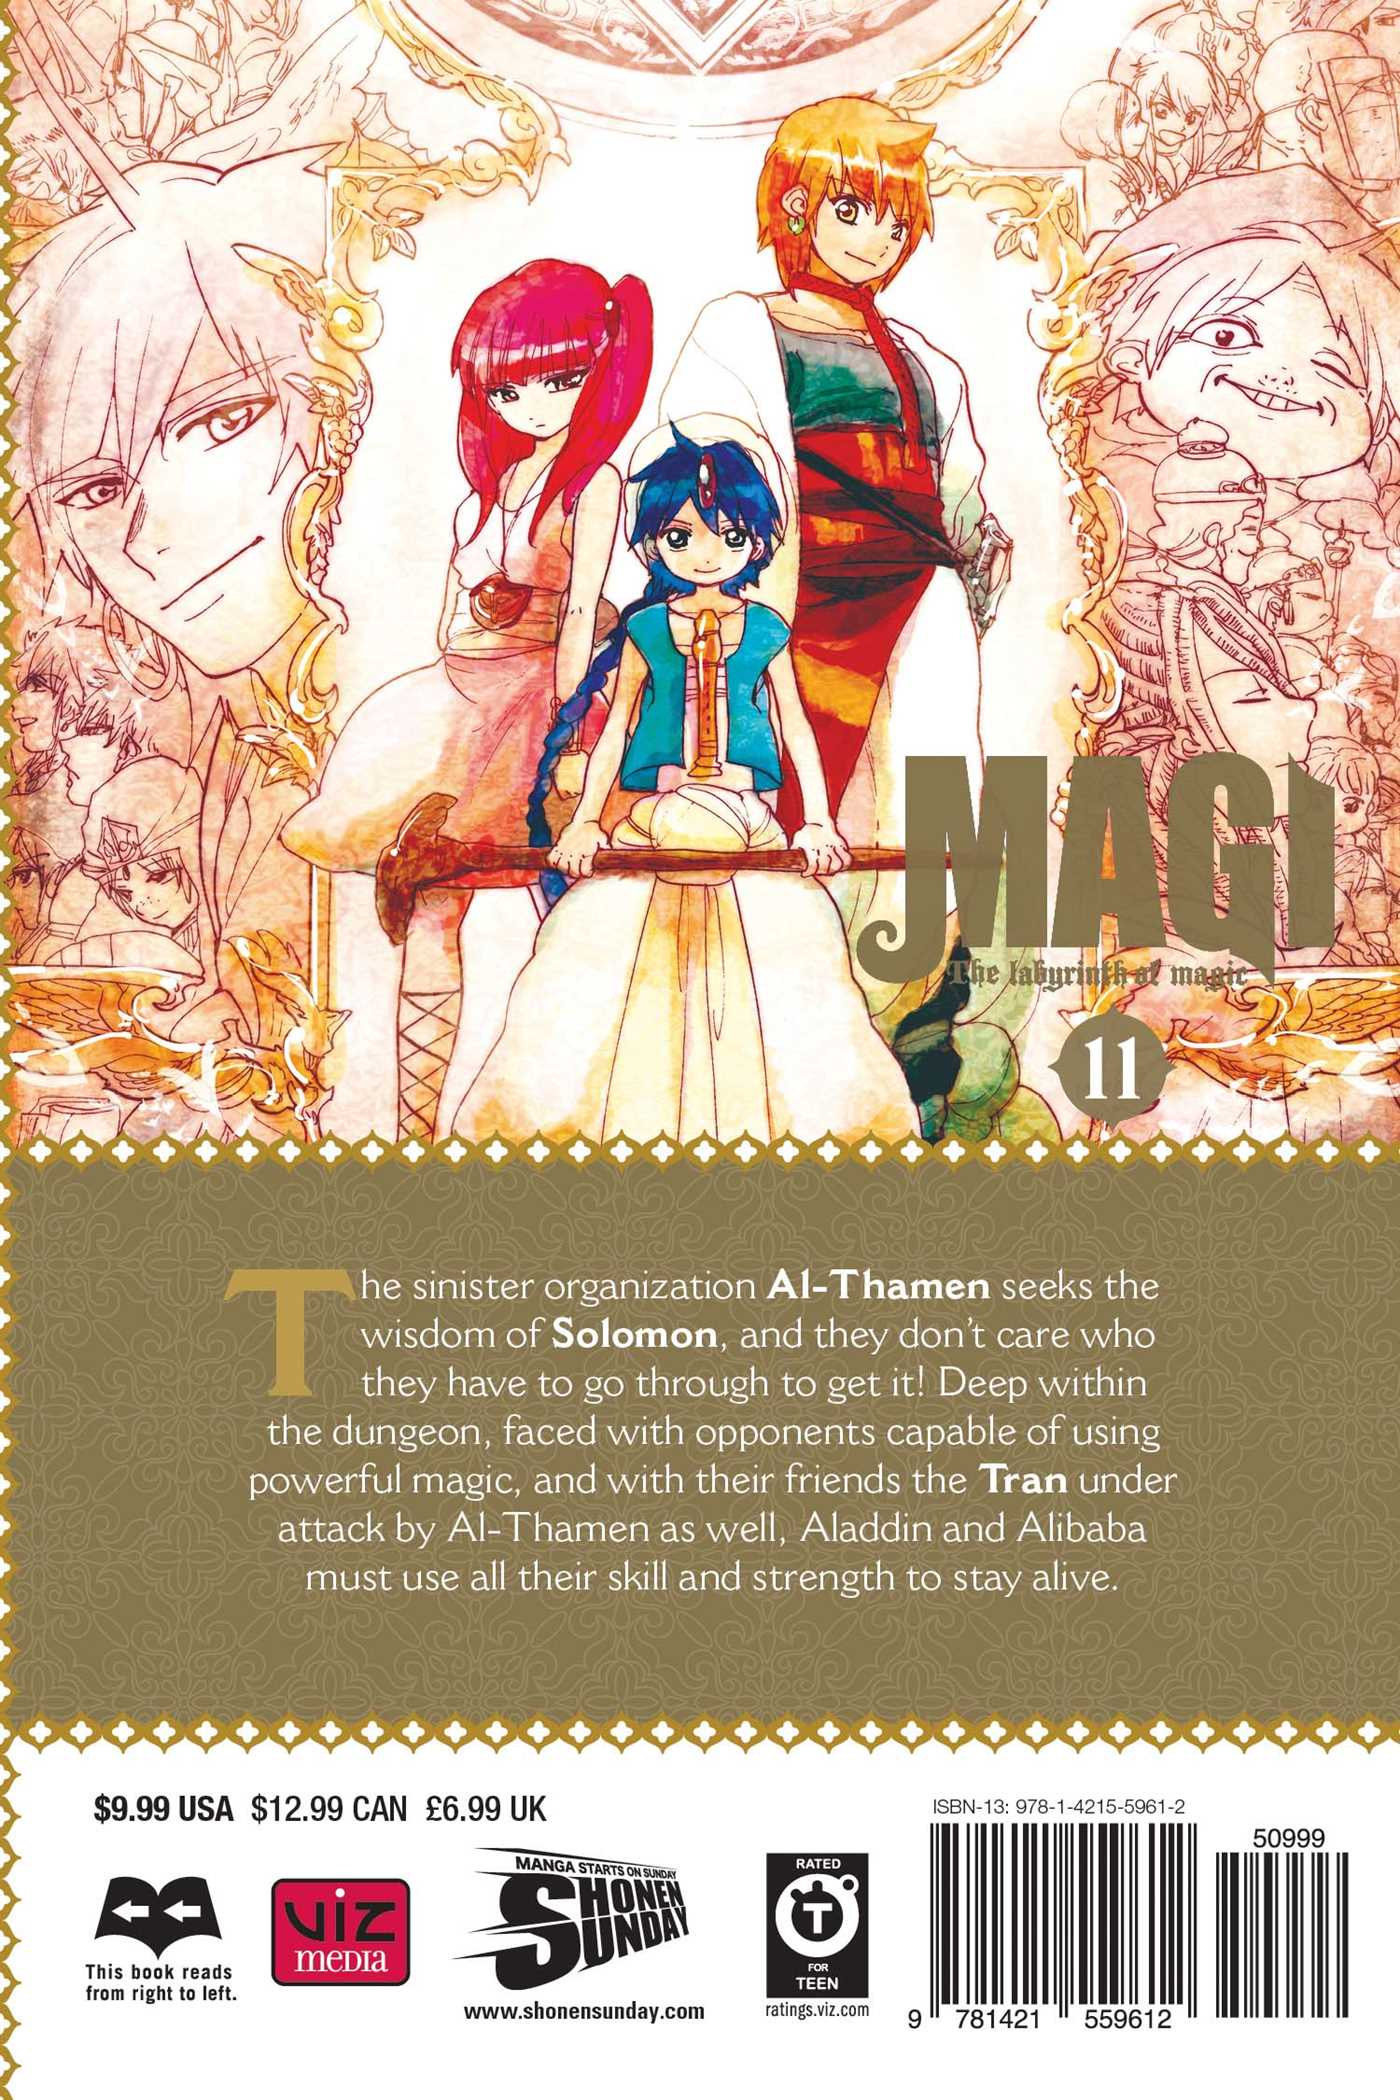 Magi vol 11 9781421559612 hr back